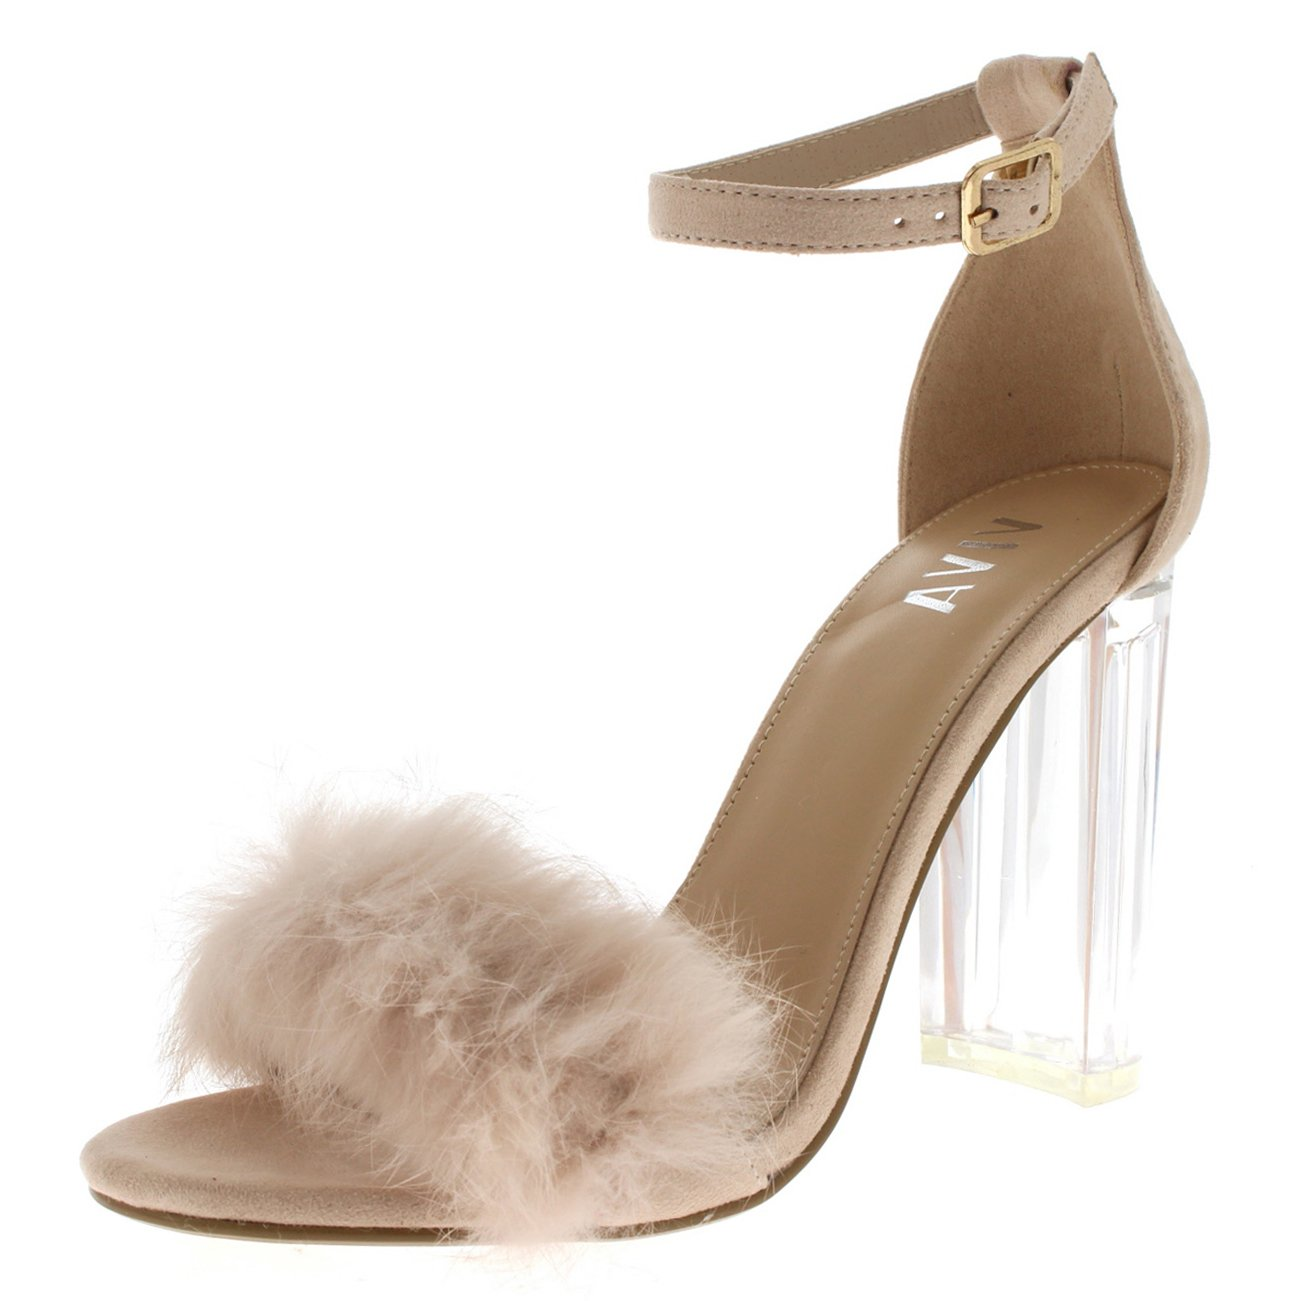 Viva Womens Fluffy Glass Block Heel Party Cut Out Fashion High Heels Pumps - Nude KL0280G 8US/39